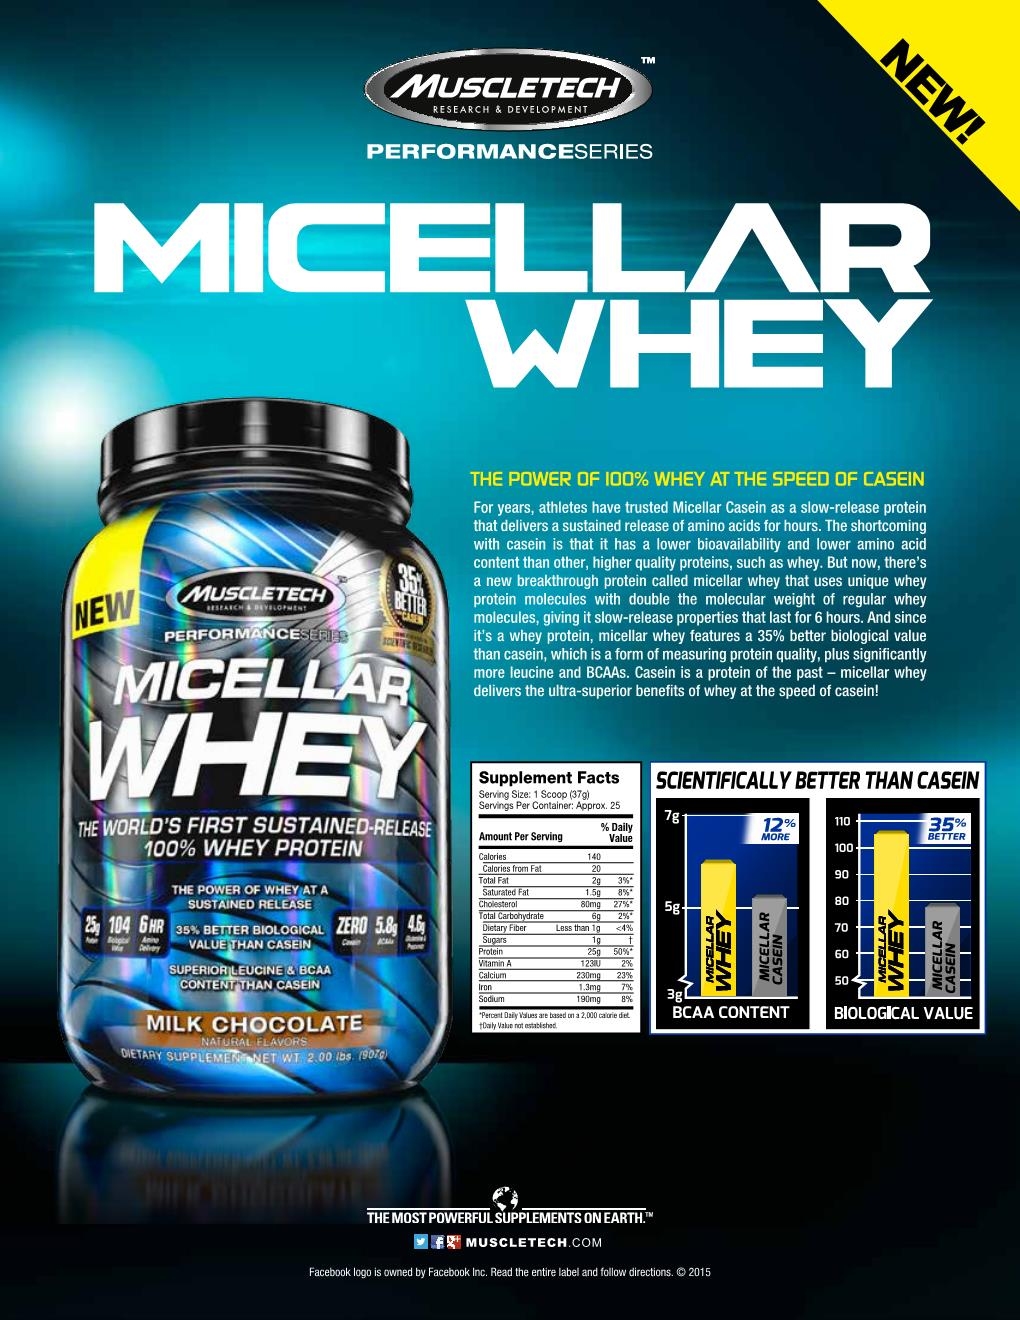 Micellar Whey Review